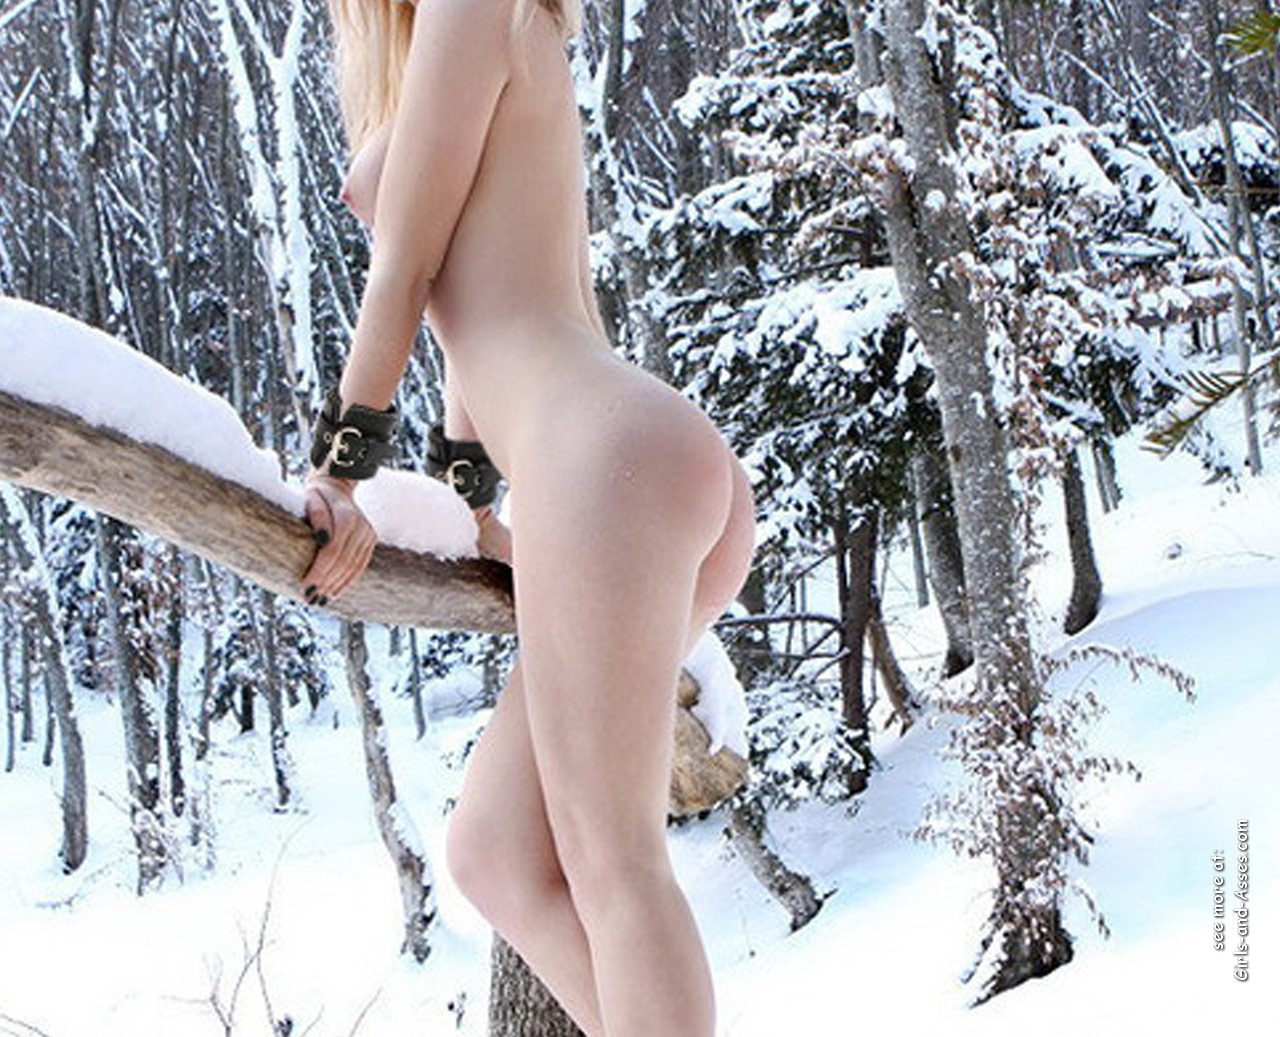 winter and snow and naked girl with petite ass picture 02400